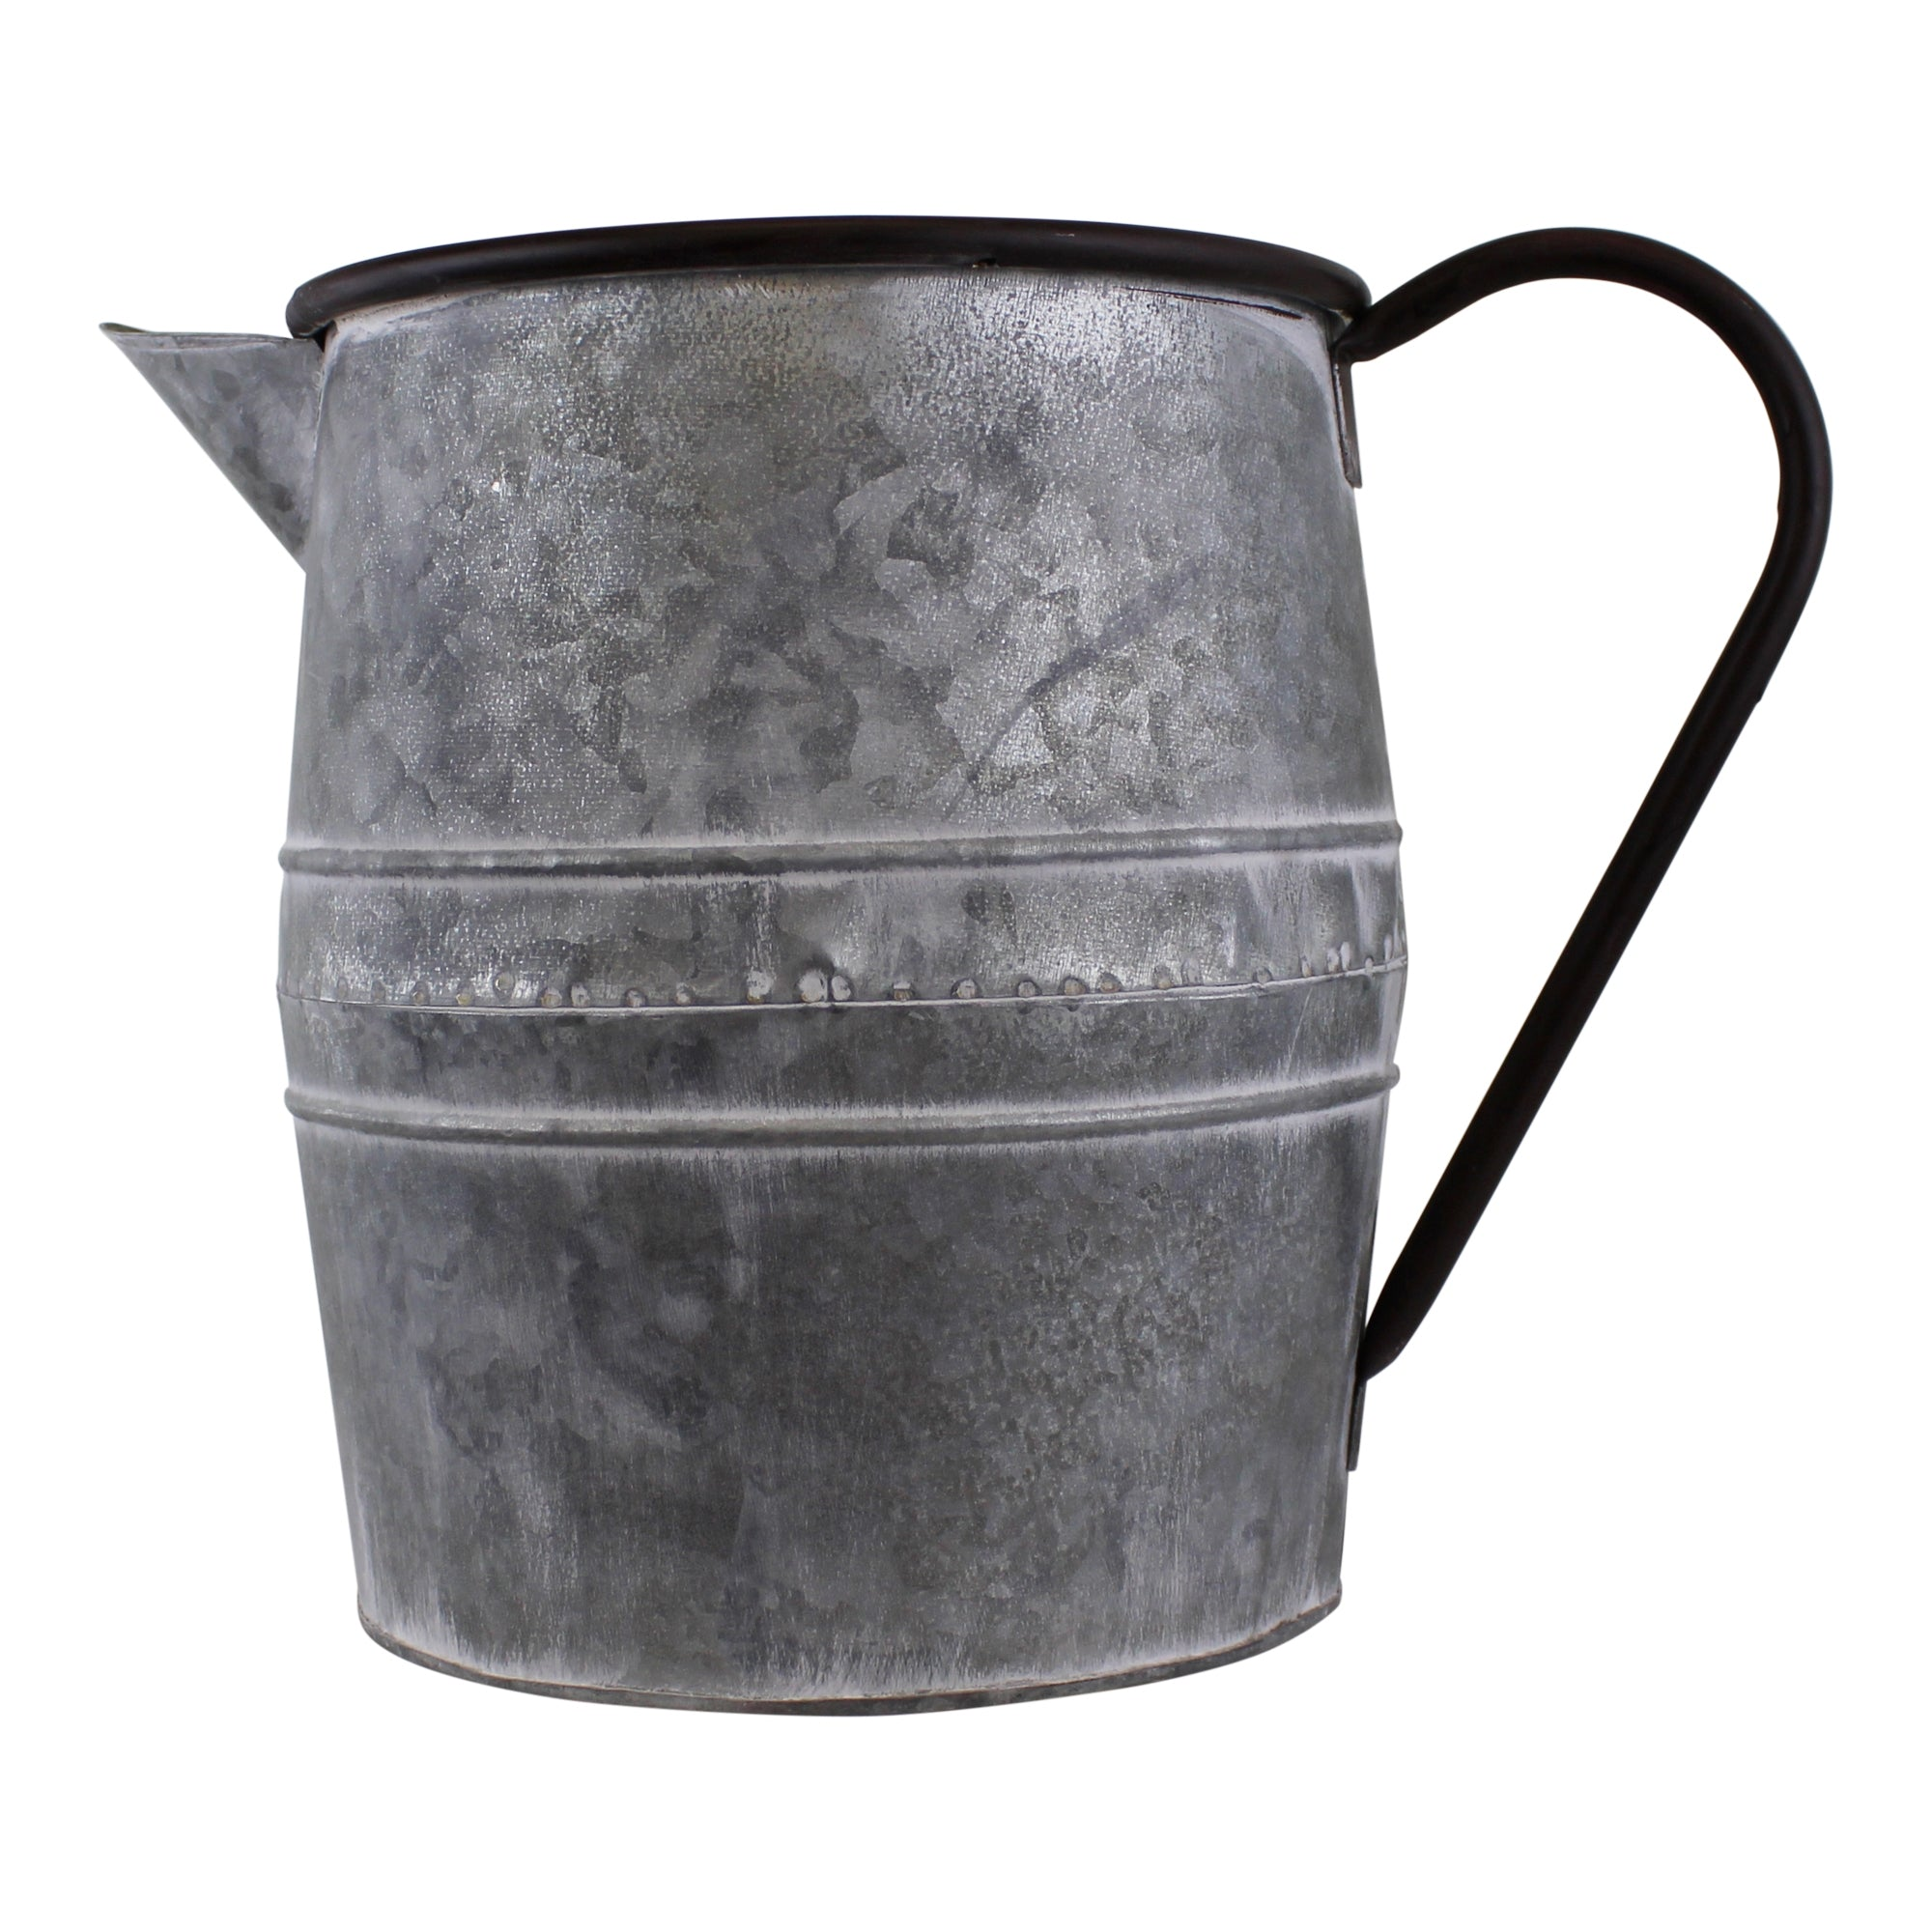 Vintage Style Metal Jug Garden Planter, Lawn & Garden by Low Cost Gifts